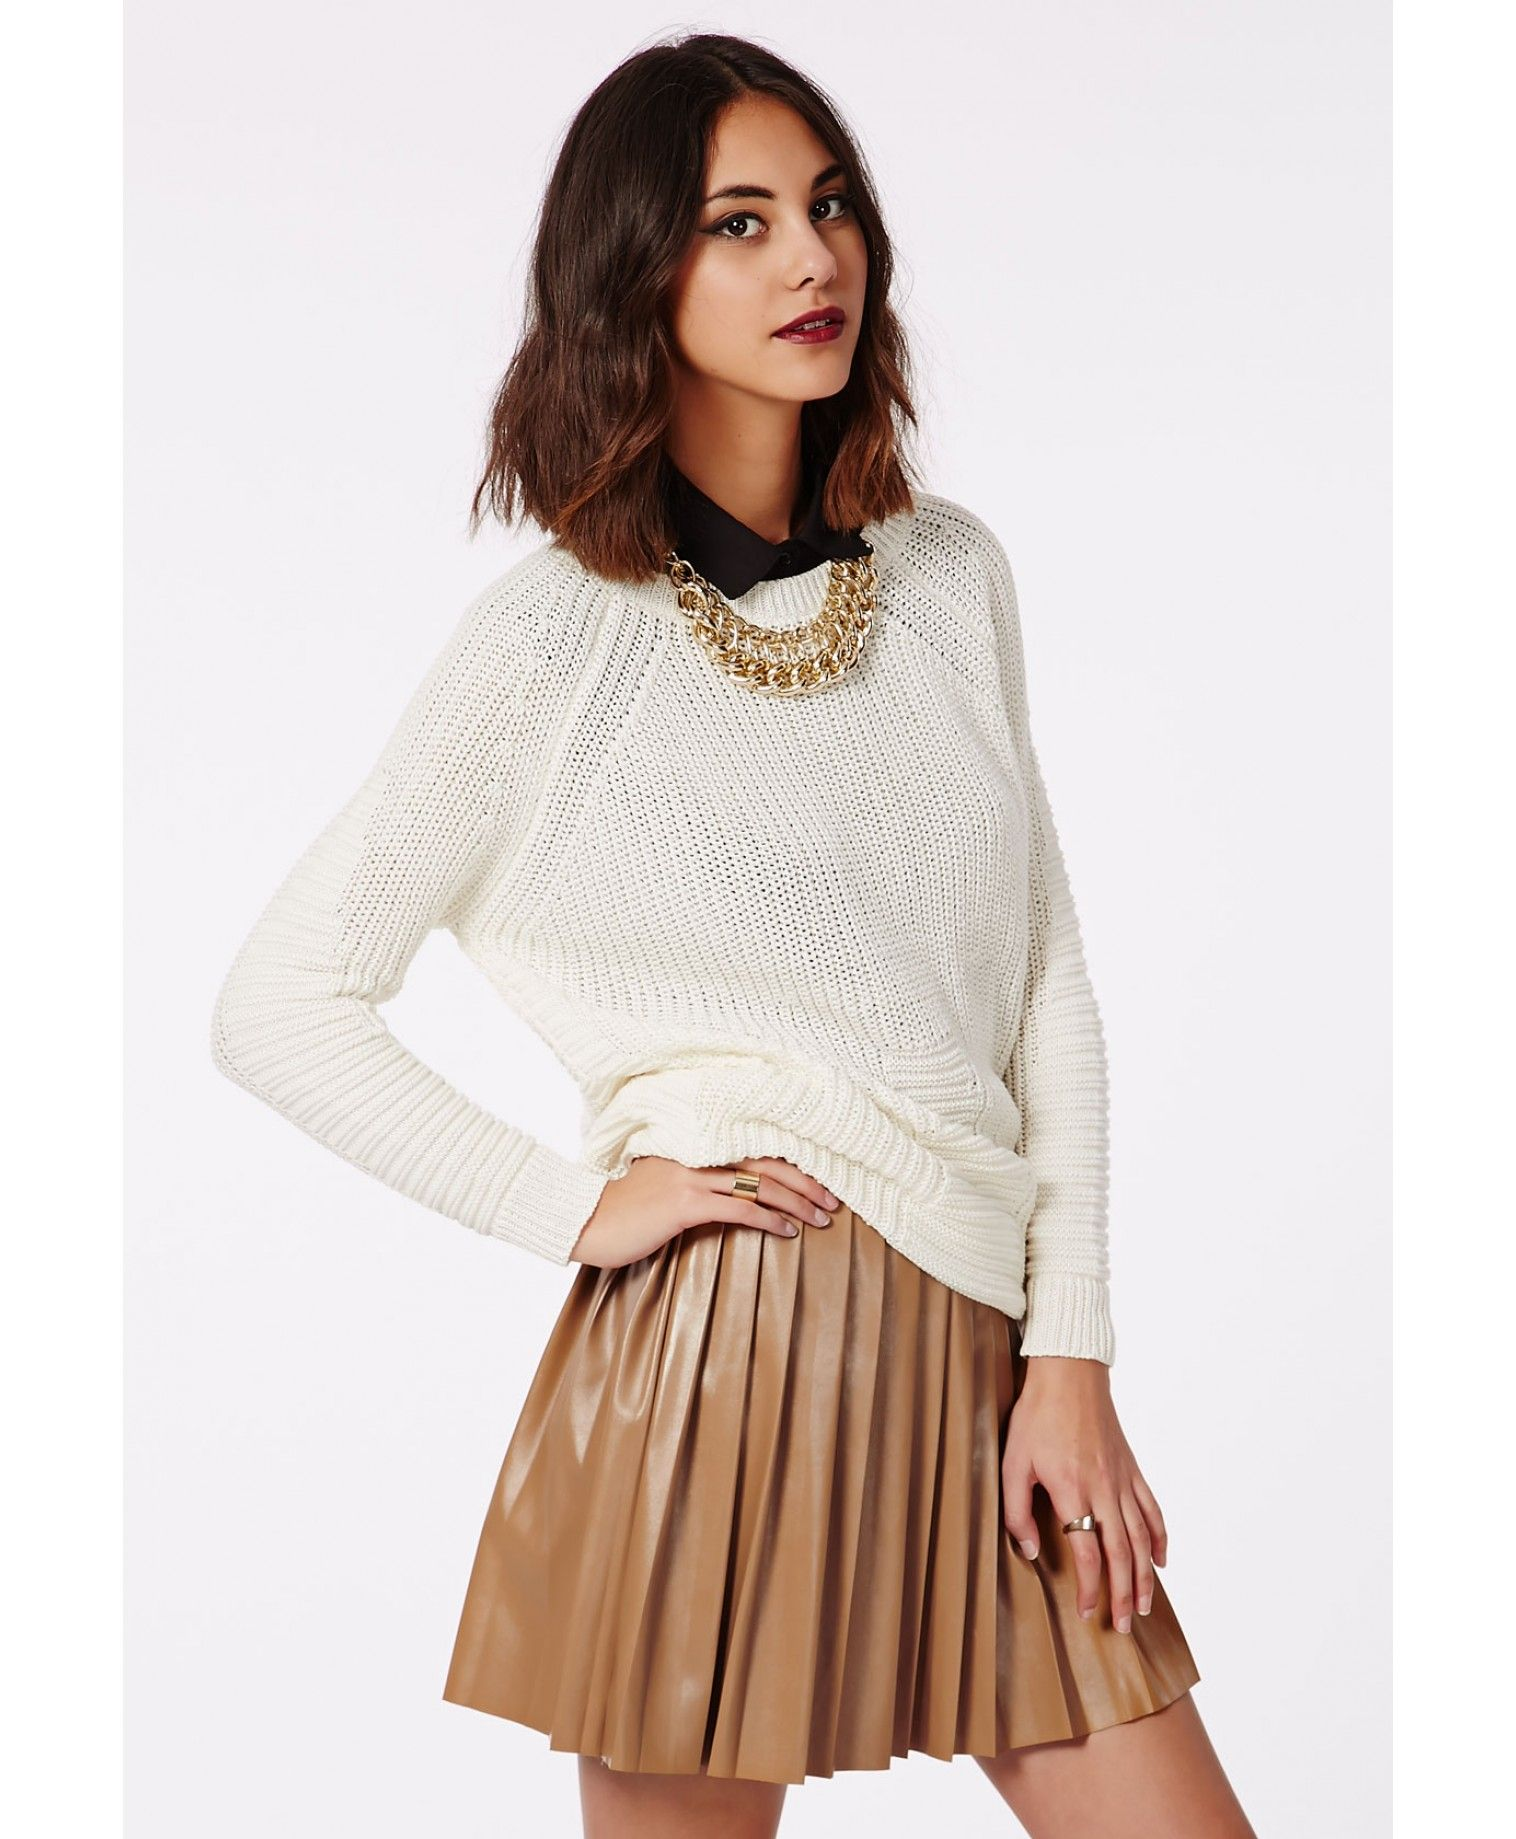 d47aa59a8 Livia Faux Leather Pleated Skater Skirt Camel - Skirts - Missguided ...